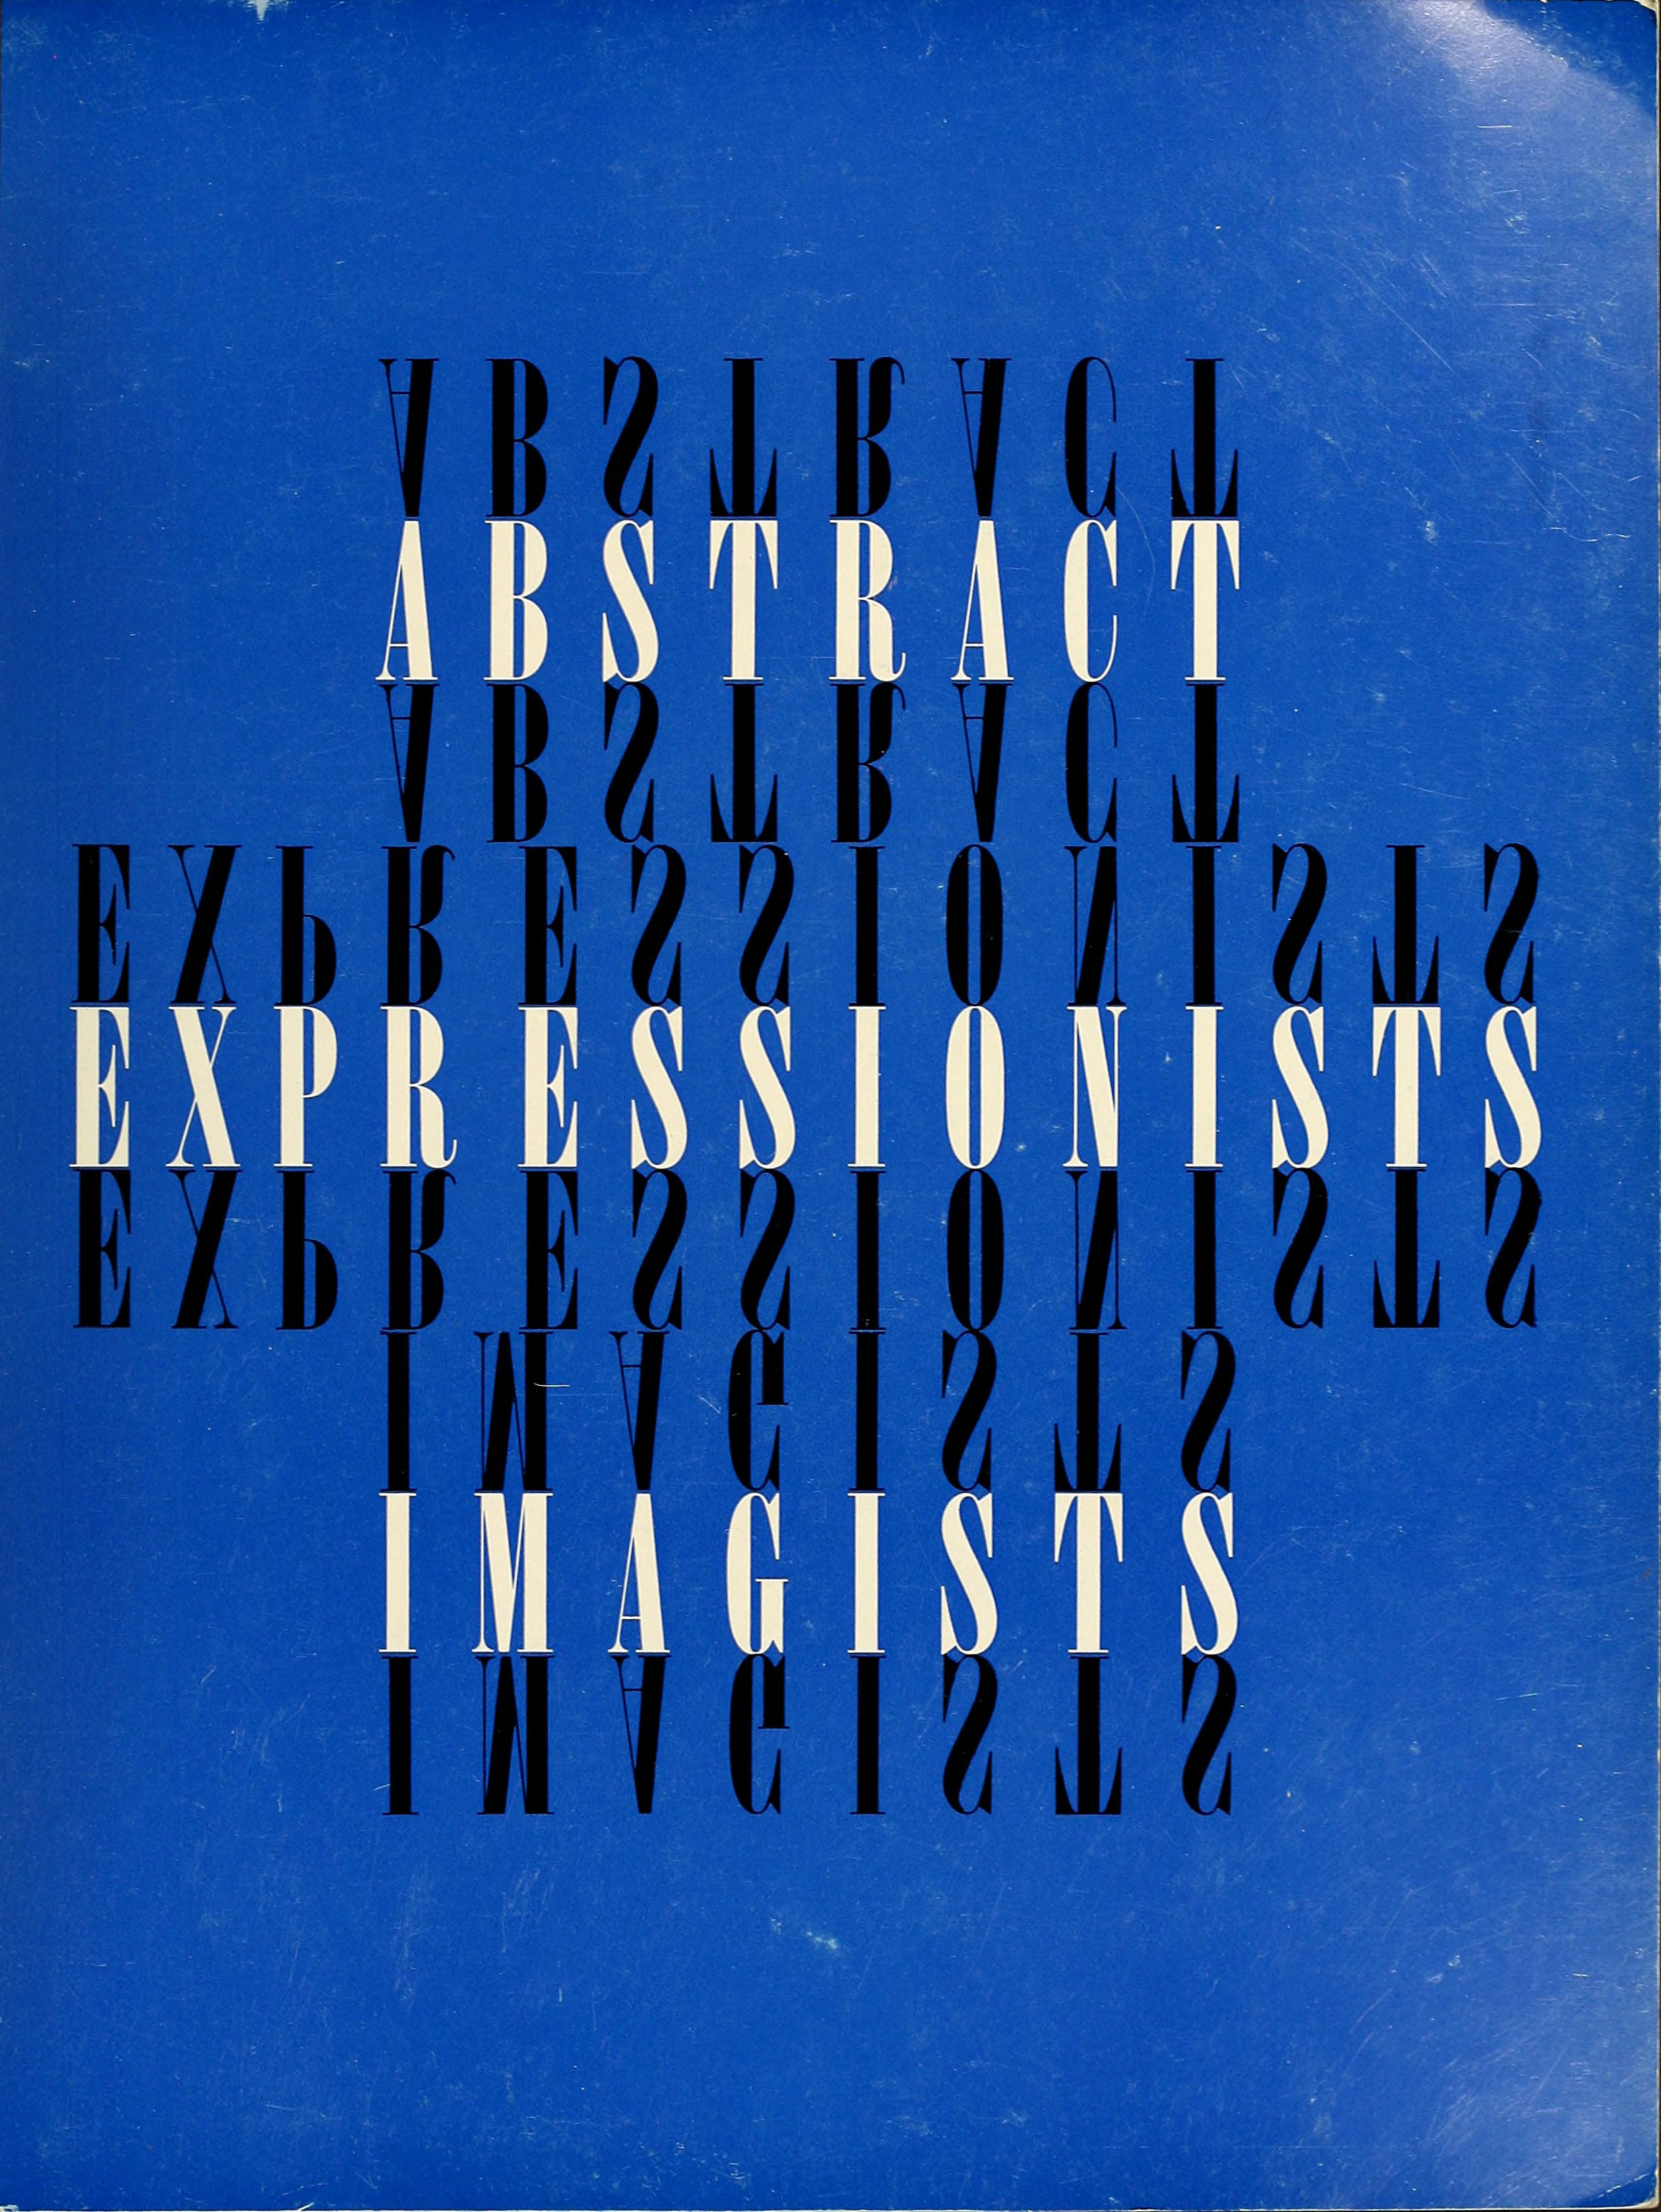 abstract expressionists imagists